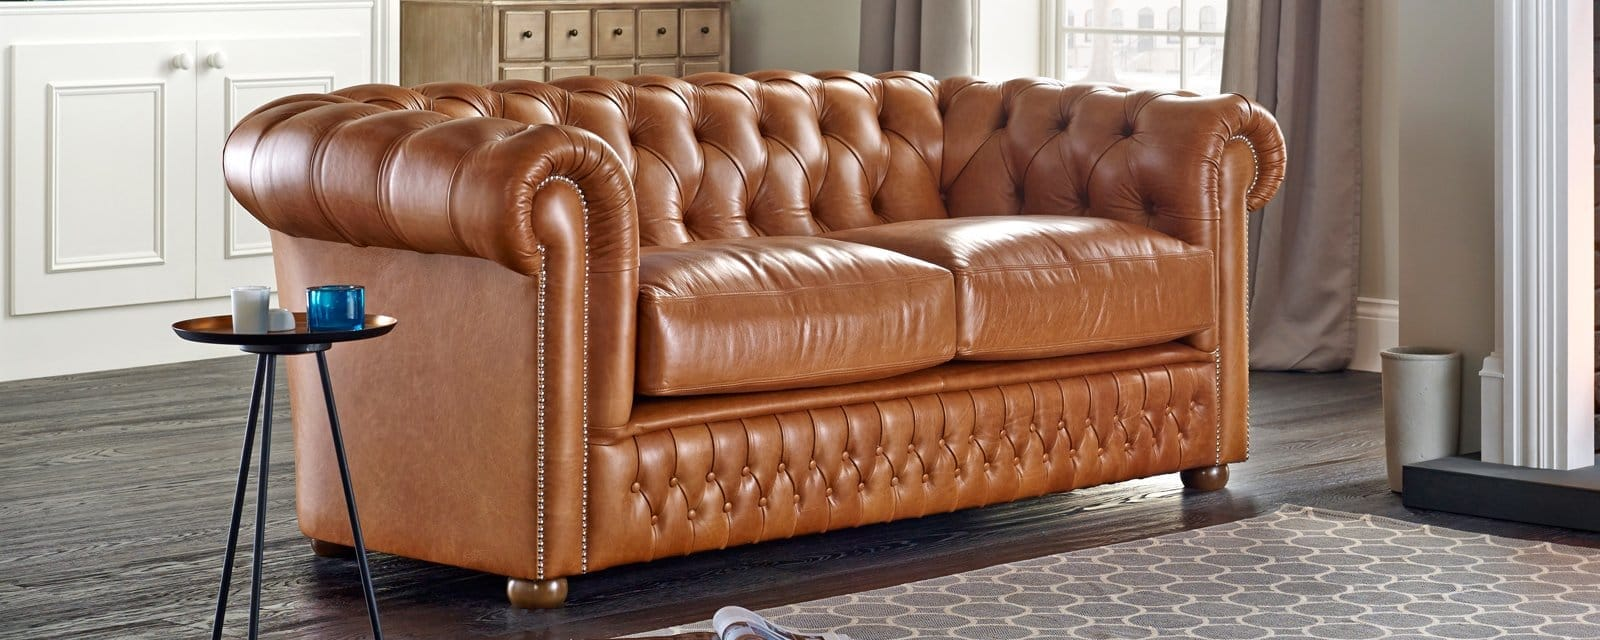 knightsbridge 1 5 seater sofa from sofas by saxon uk. Black Bedroom Furniture Sets. Home Design Ideas